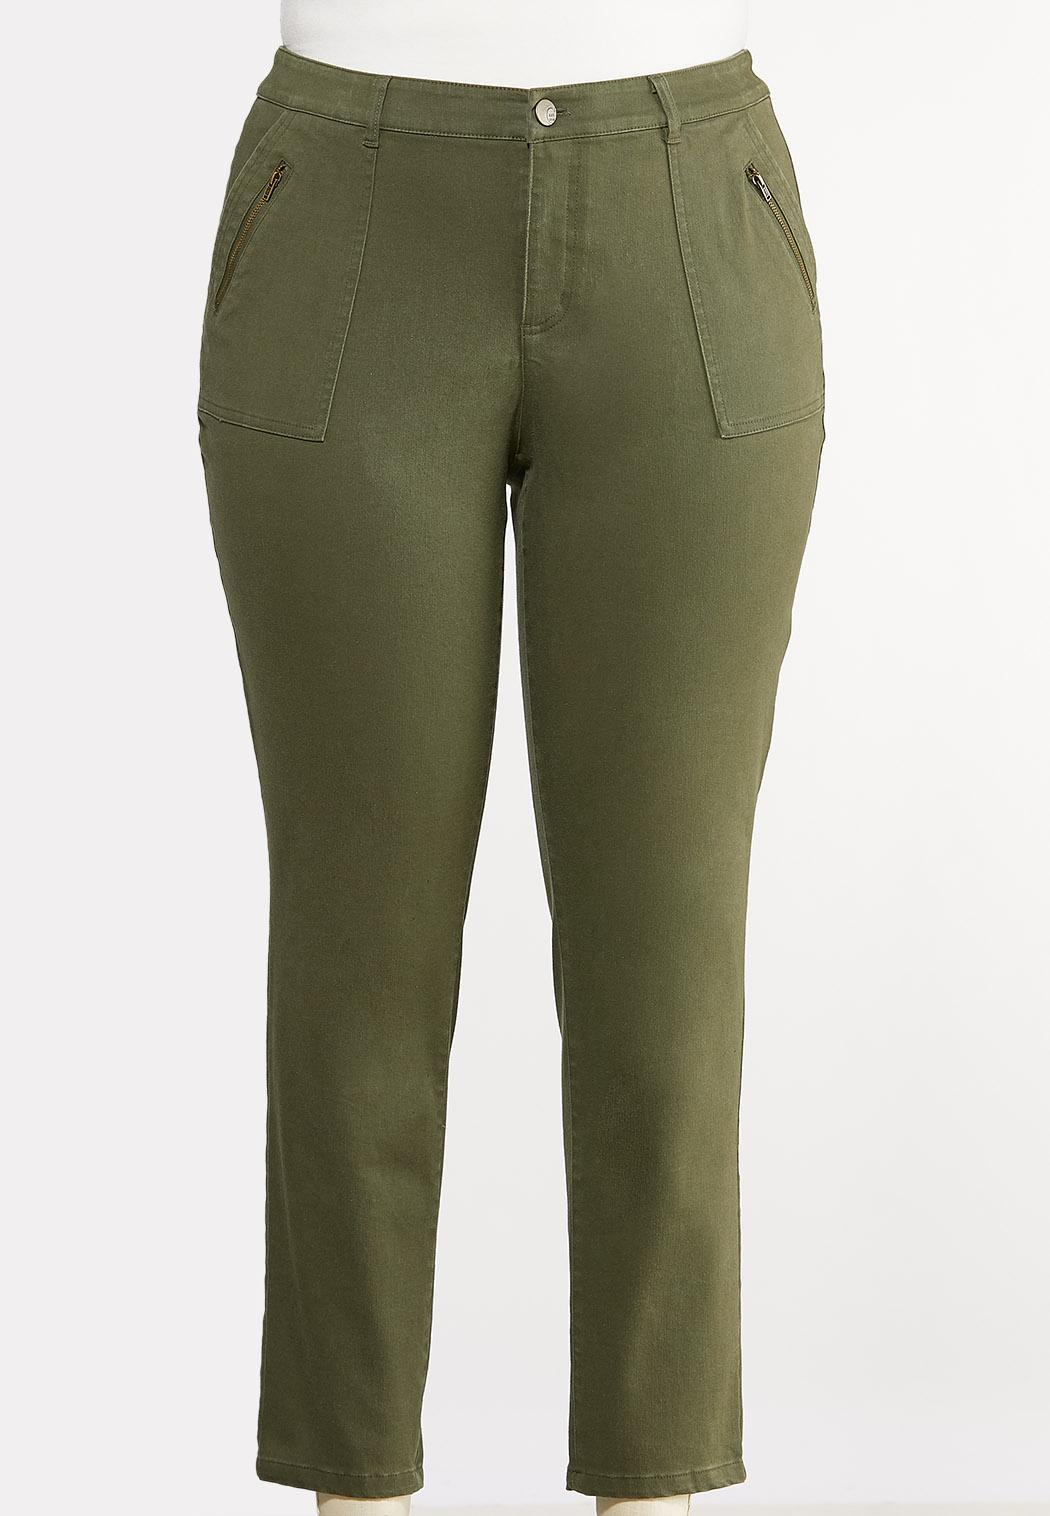 Plus Size Olive Utility Jeans